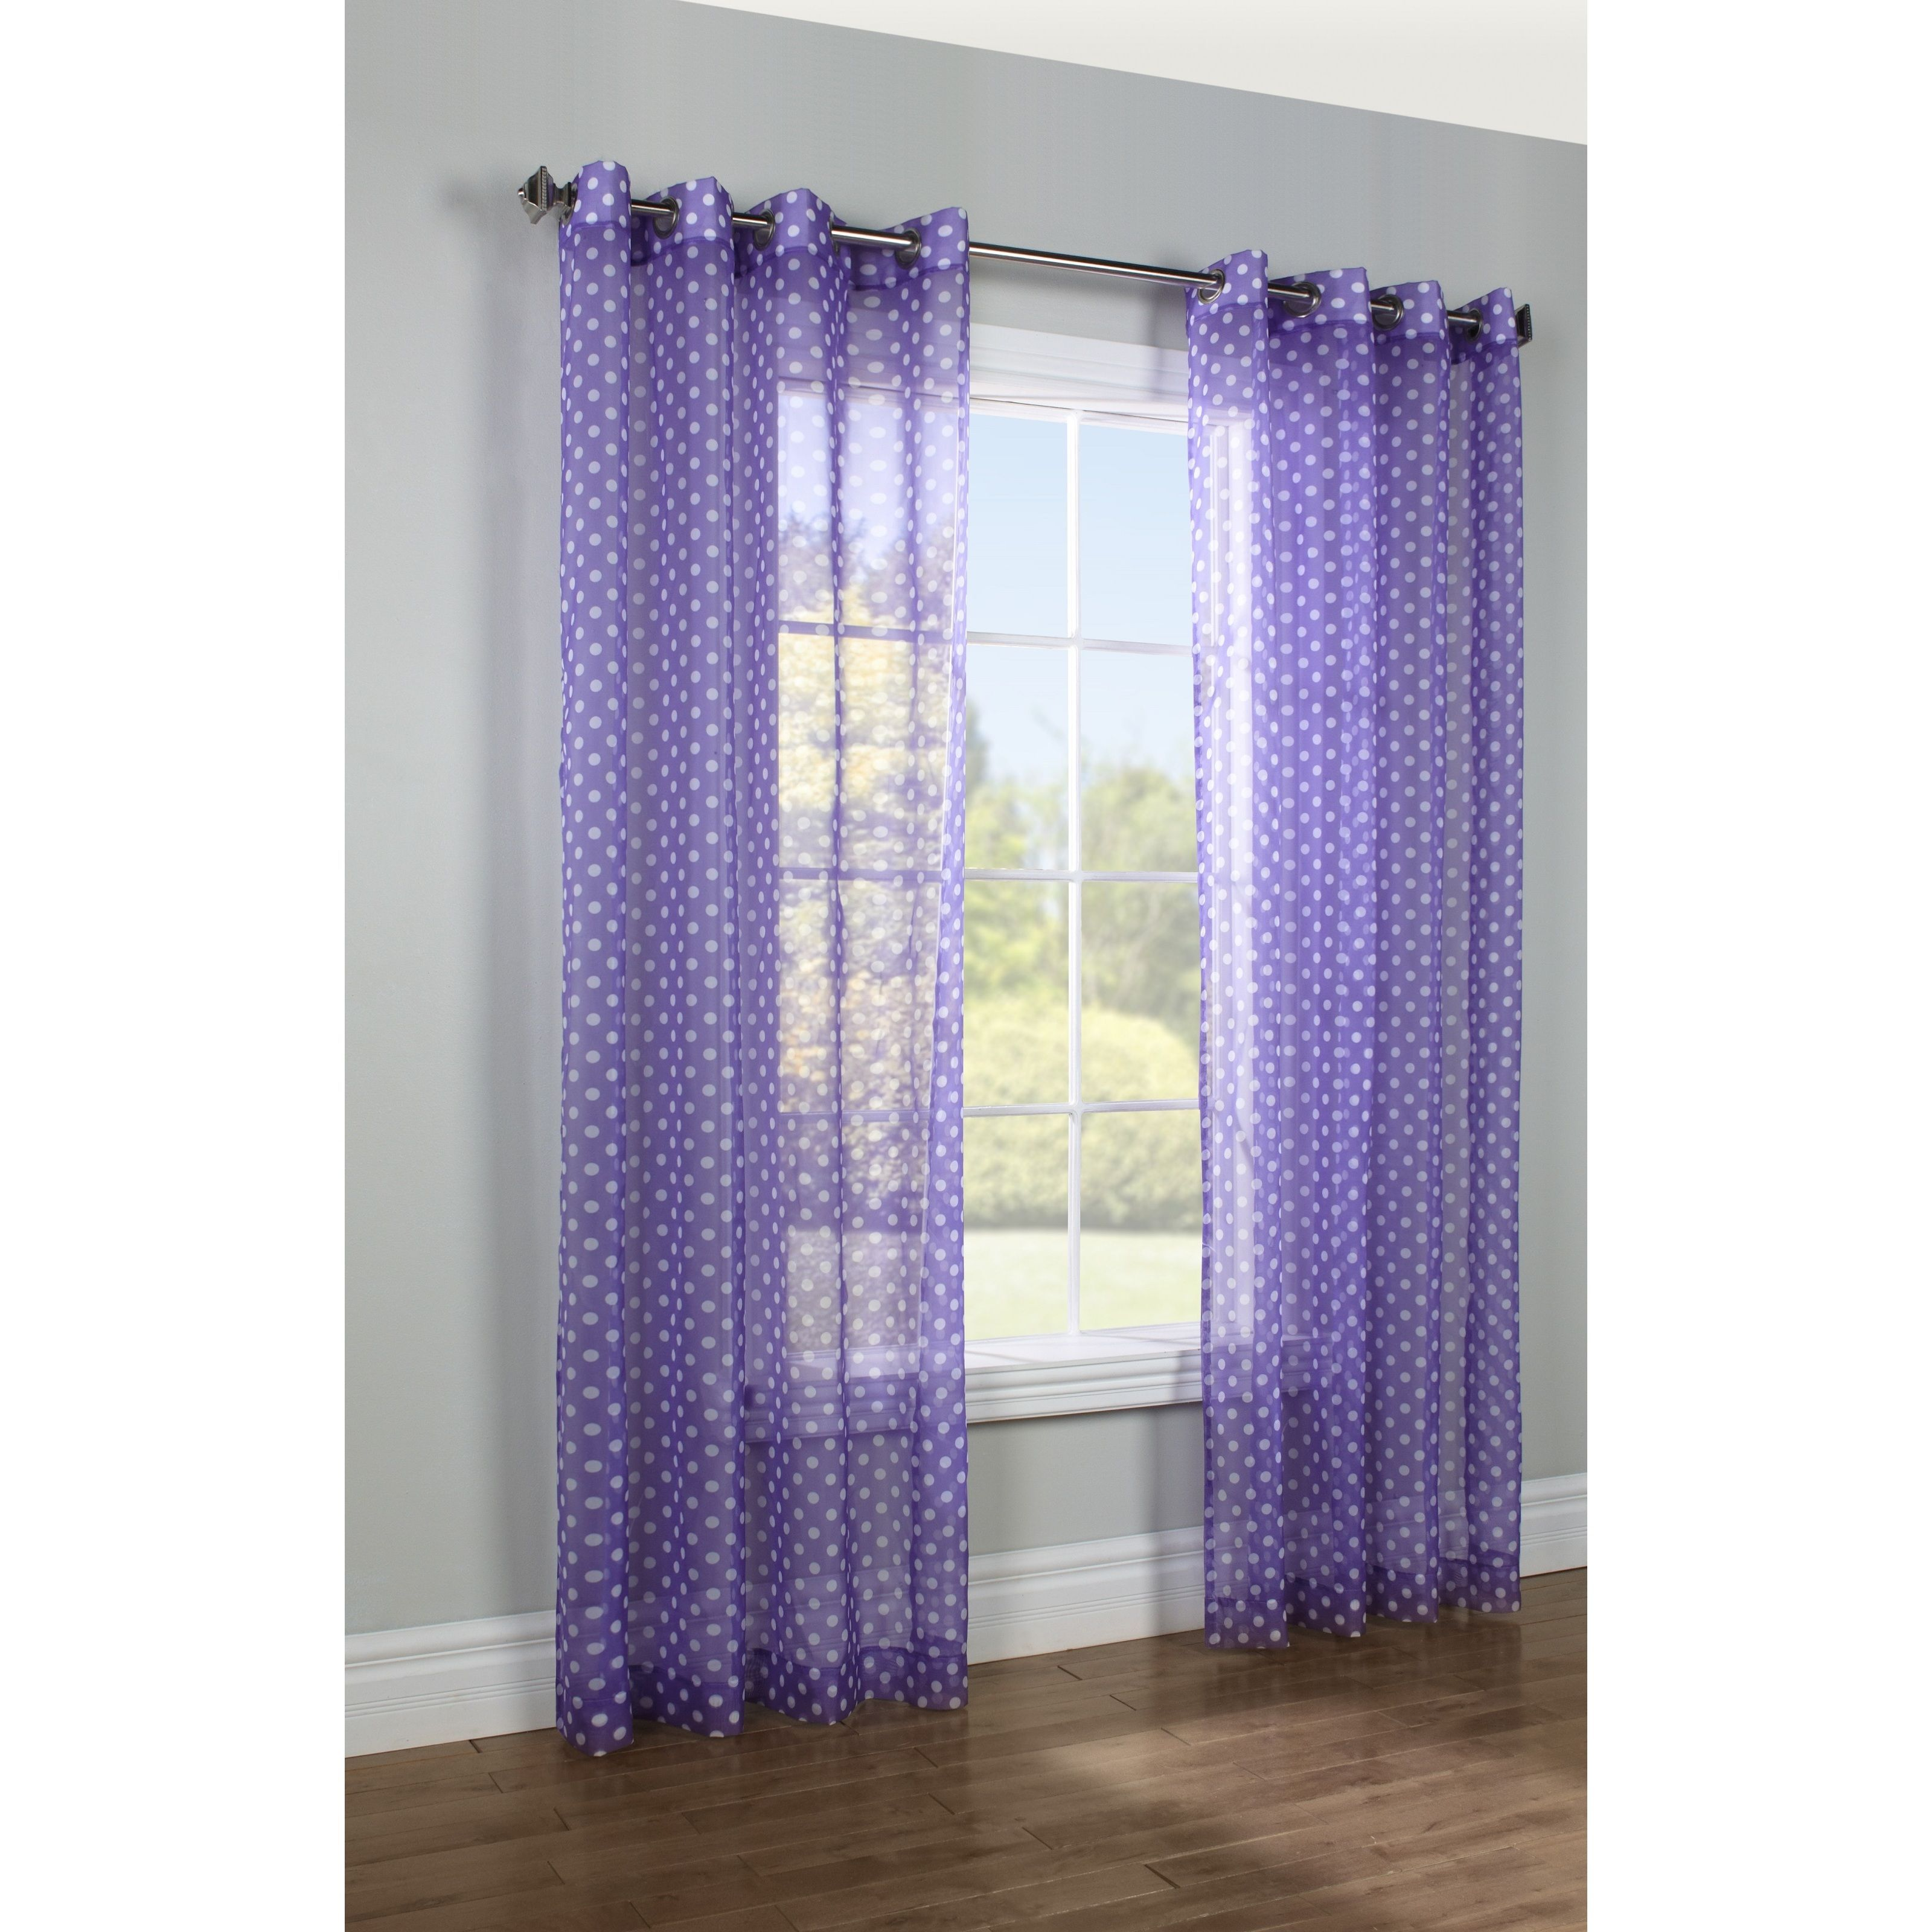 single white pin drapes and window curtain riley or purple curtains lush decor